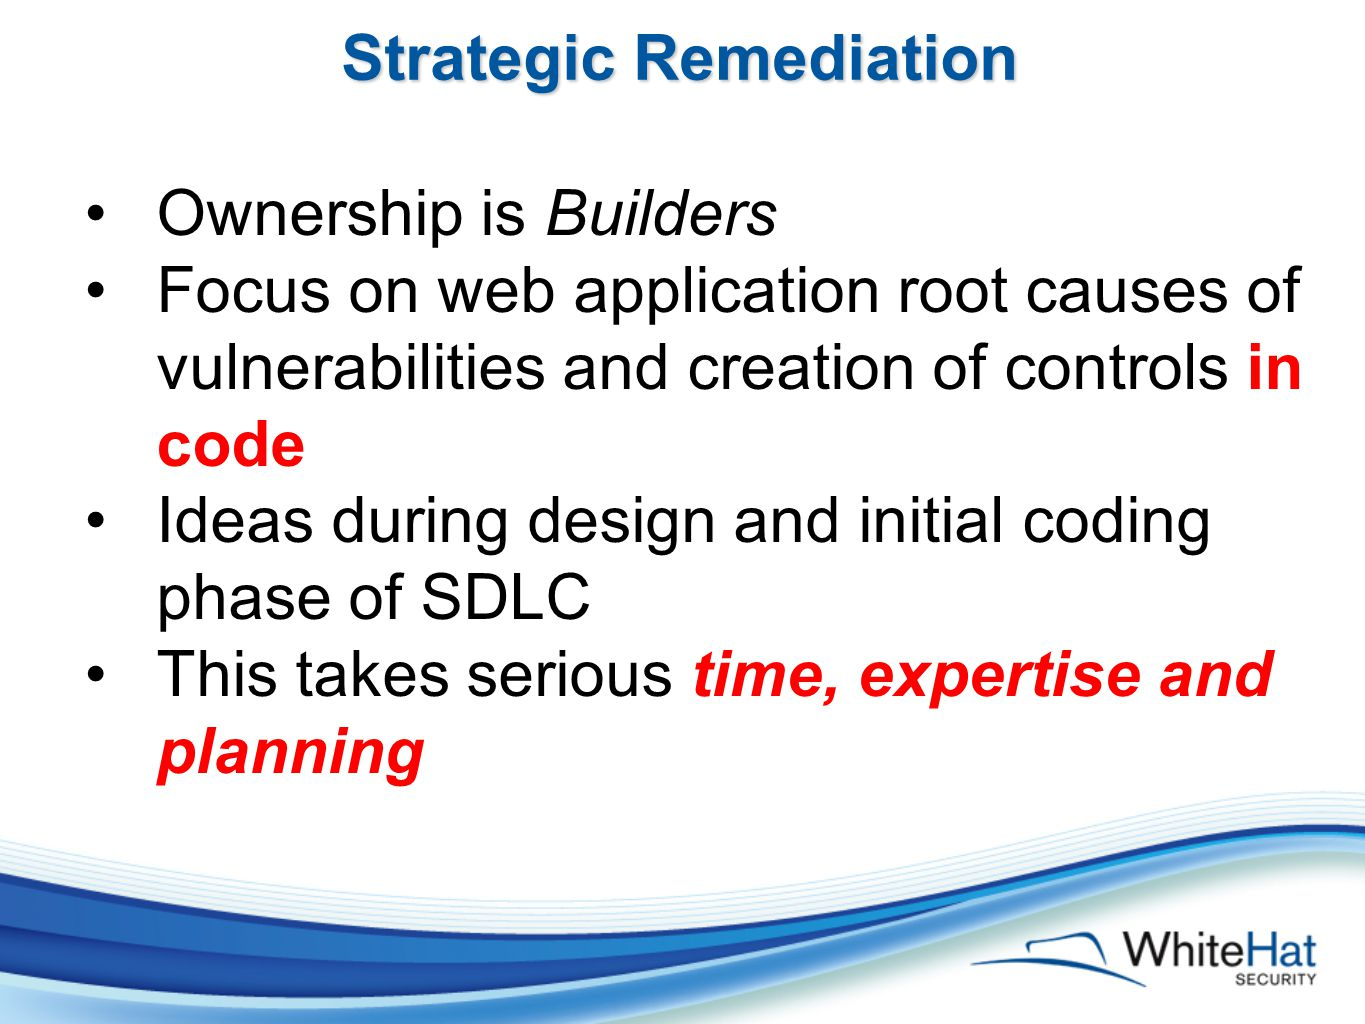 Strategic Remediation Ownership is Builders Focus on web application root causes of vulnerabilities and creation of controls in code Ideas during design and initial coding phase of SDLC This takes serious time, expertise and planning